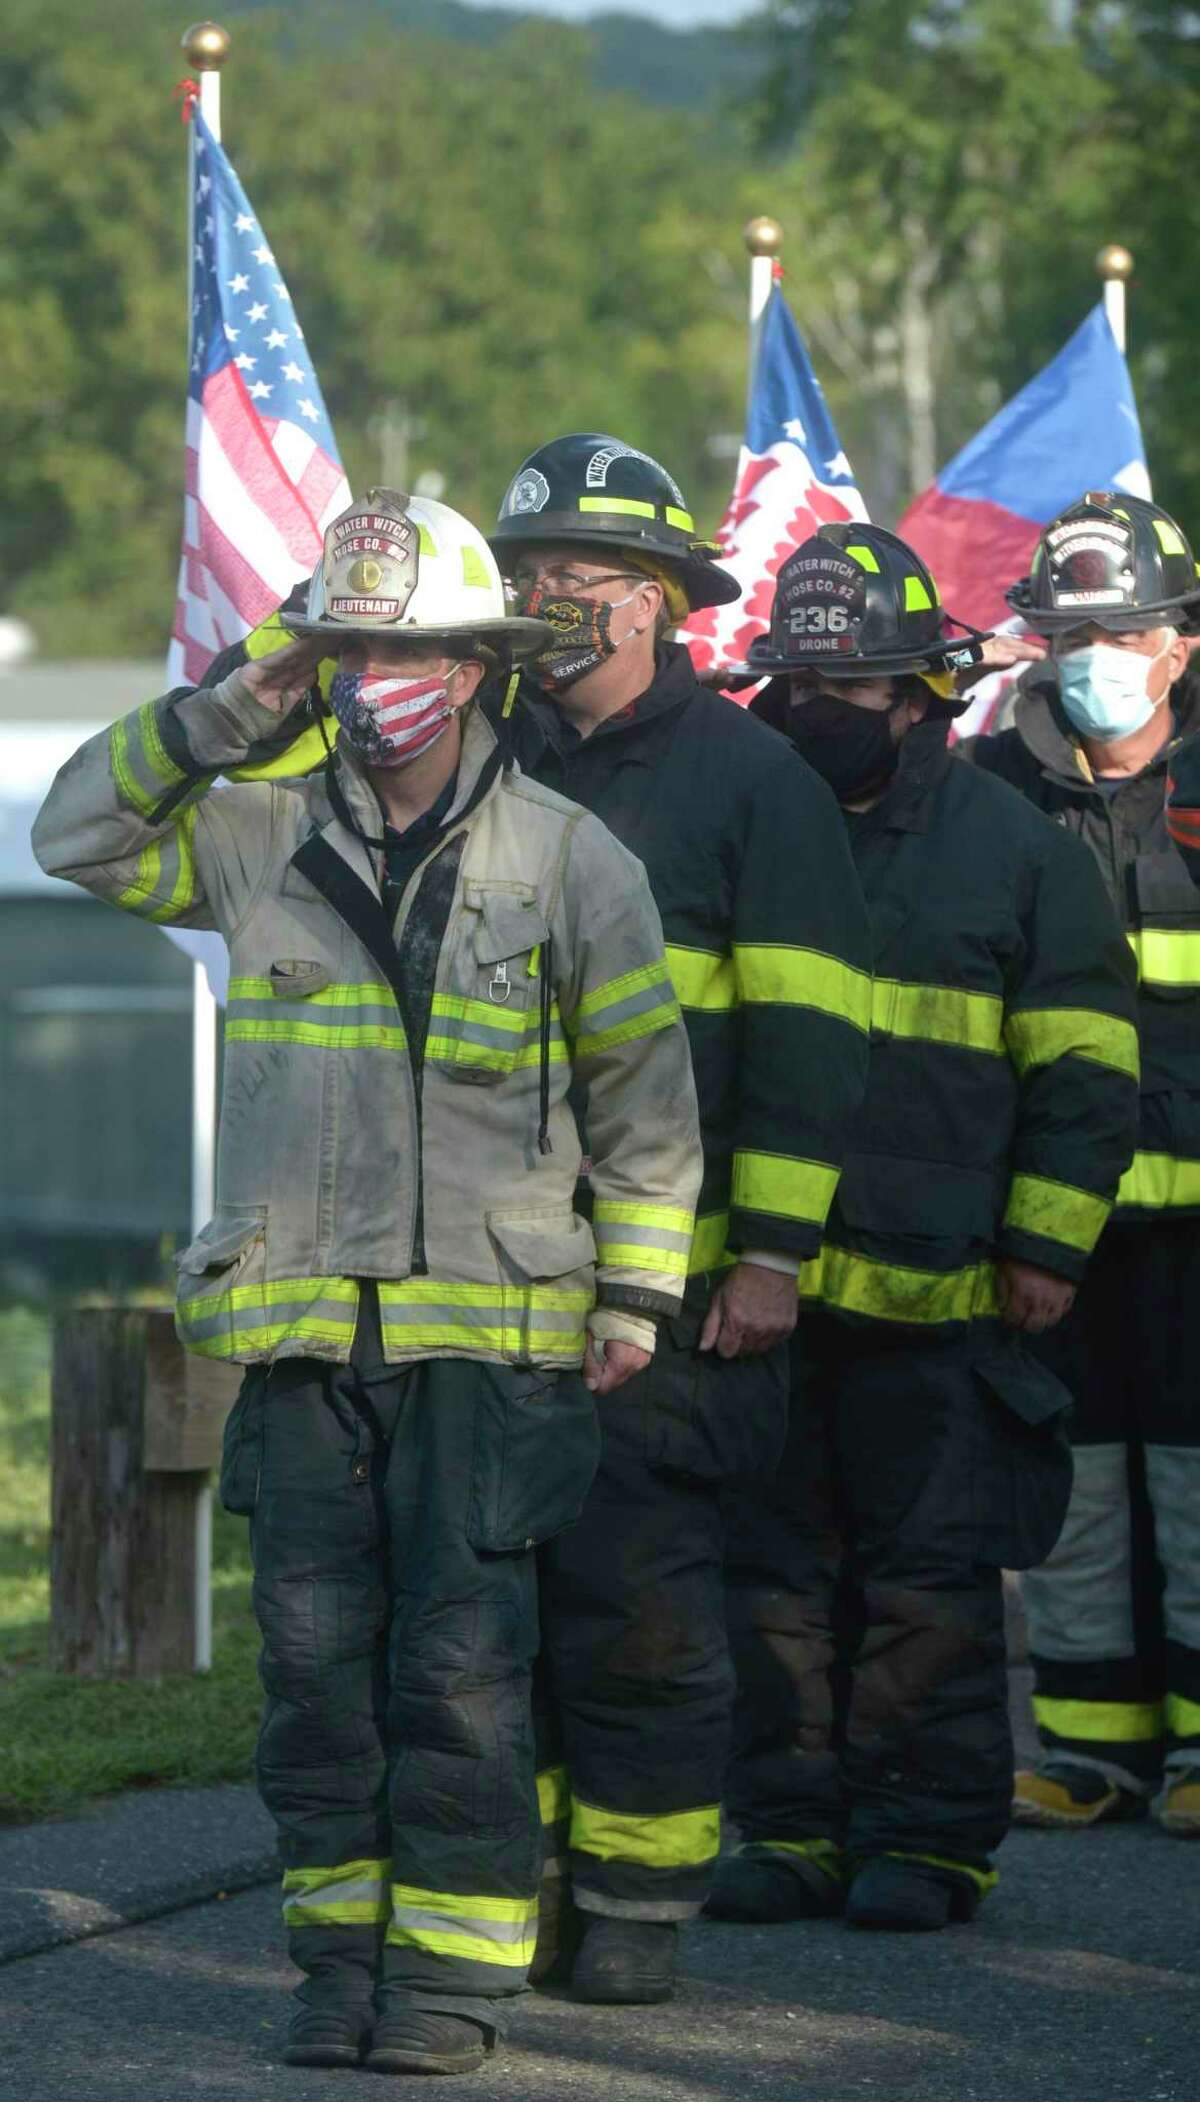 Members of the police and fire departments stand at attention as New Milford marked the 19th anniversary of September 11, 2001, with its annual 9-11-01 Memorial Ceremony. Friday, September 11, 2020, in New Milford, Conn.